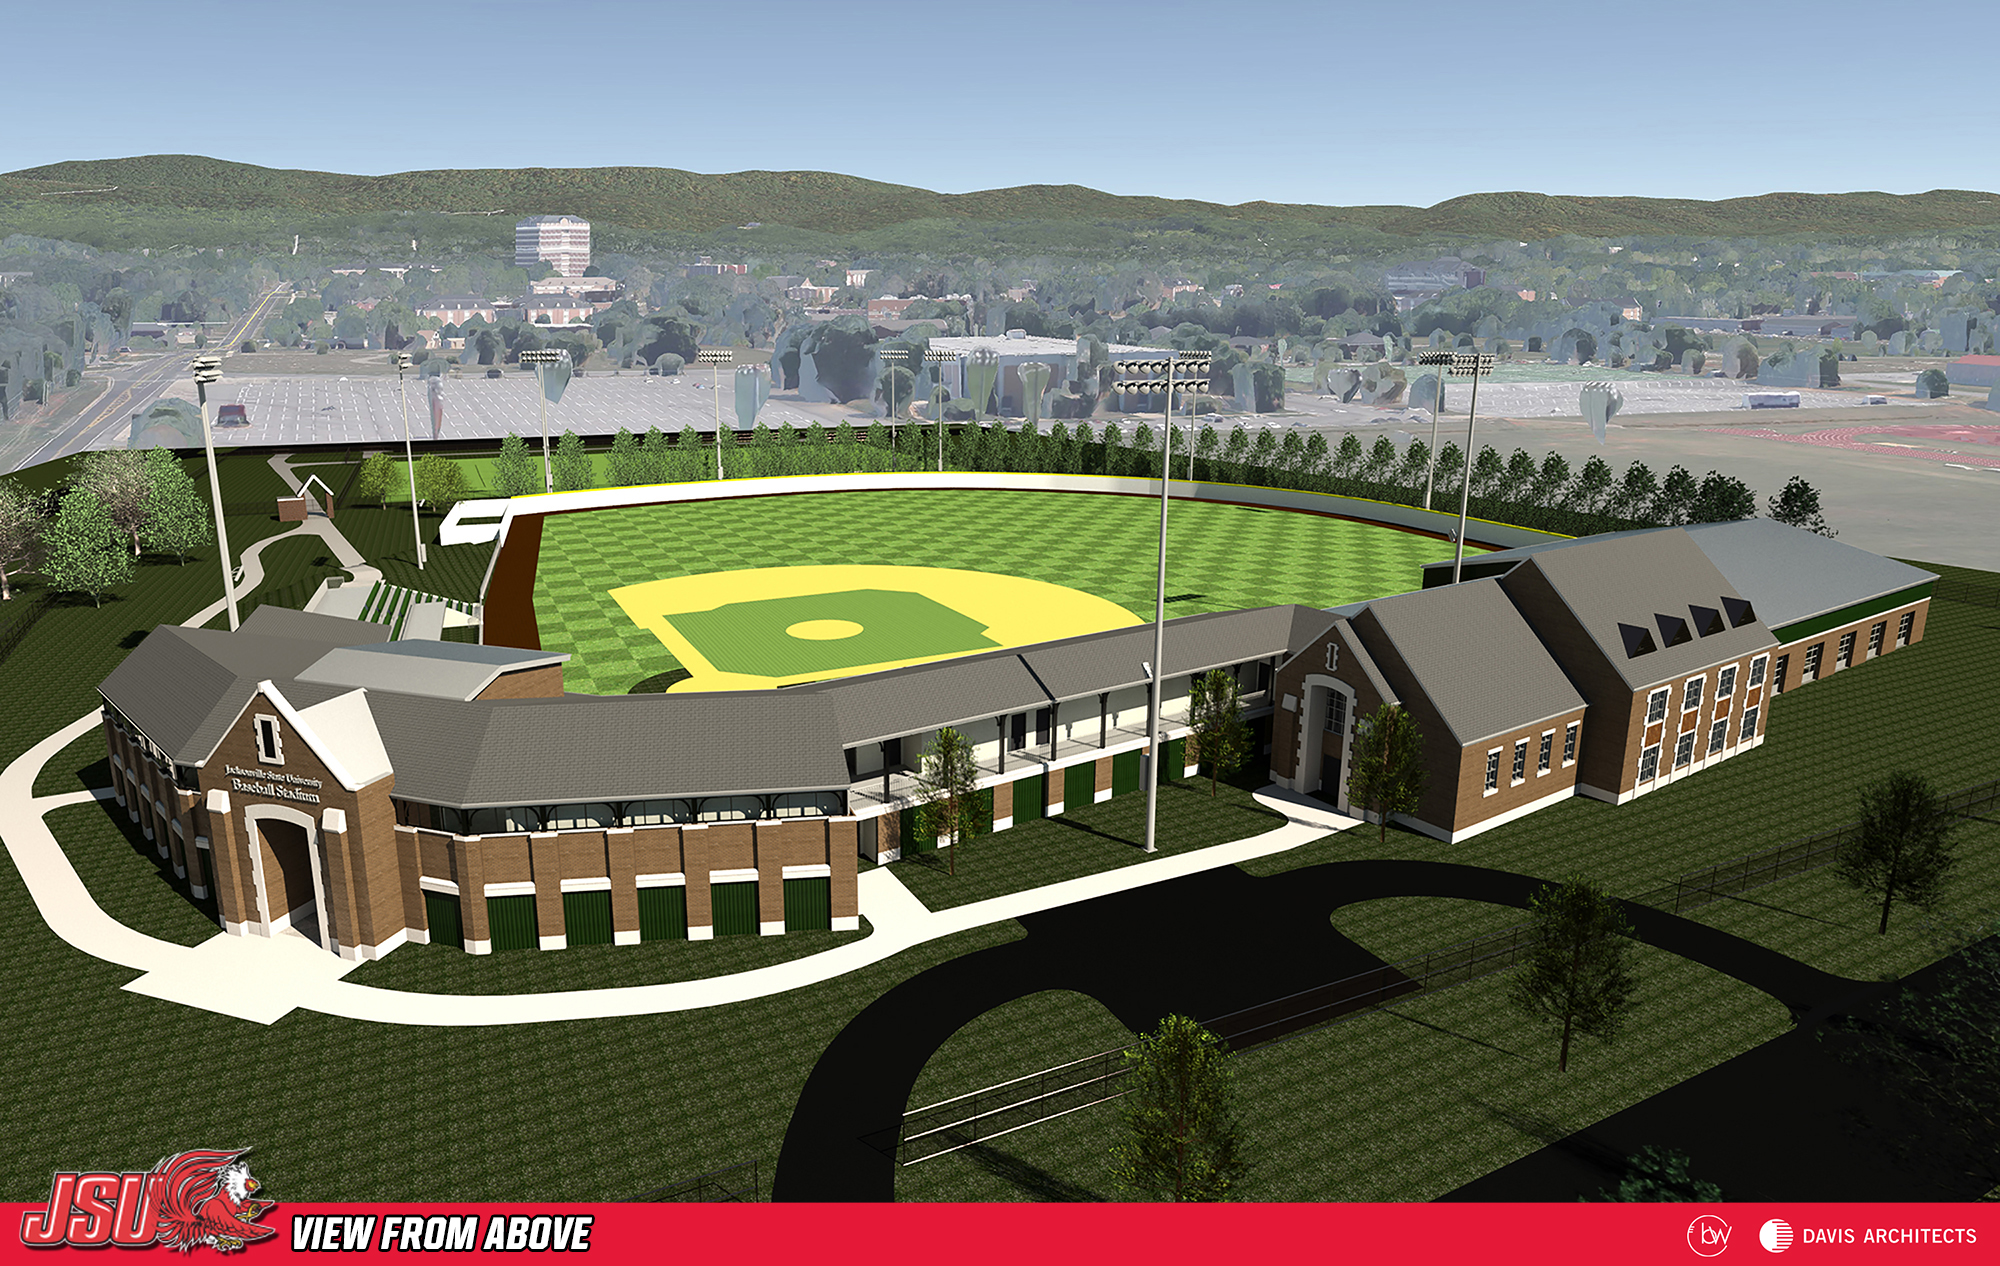 Jsu athletics jsu reveals renderings of new baseball stadium 10536 malvernweather